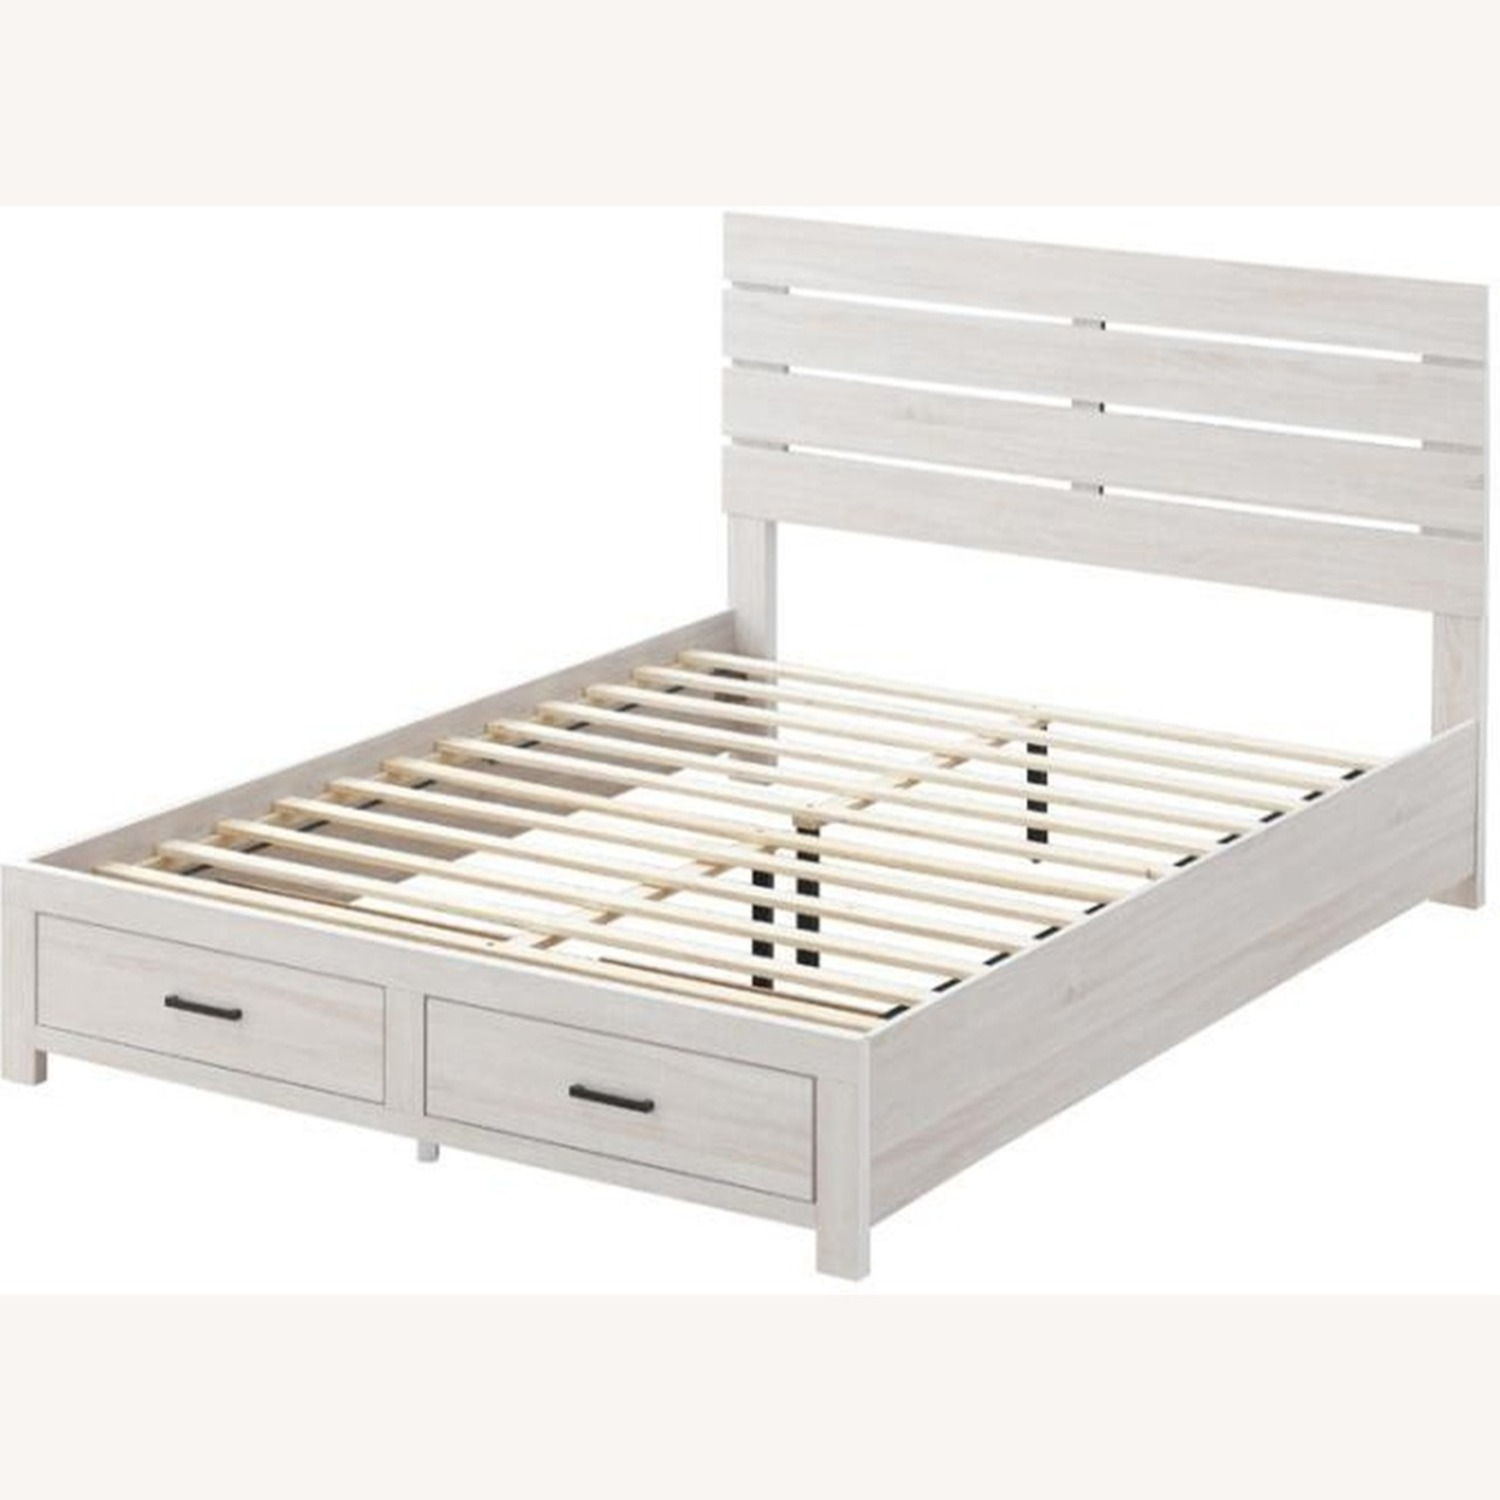 King Bed In Coastal White W/ 3D Paper Laminate - image-1